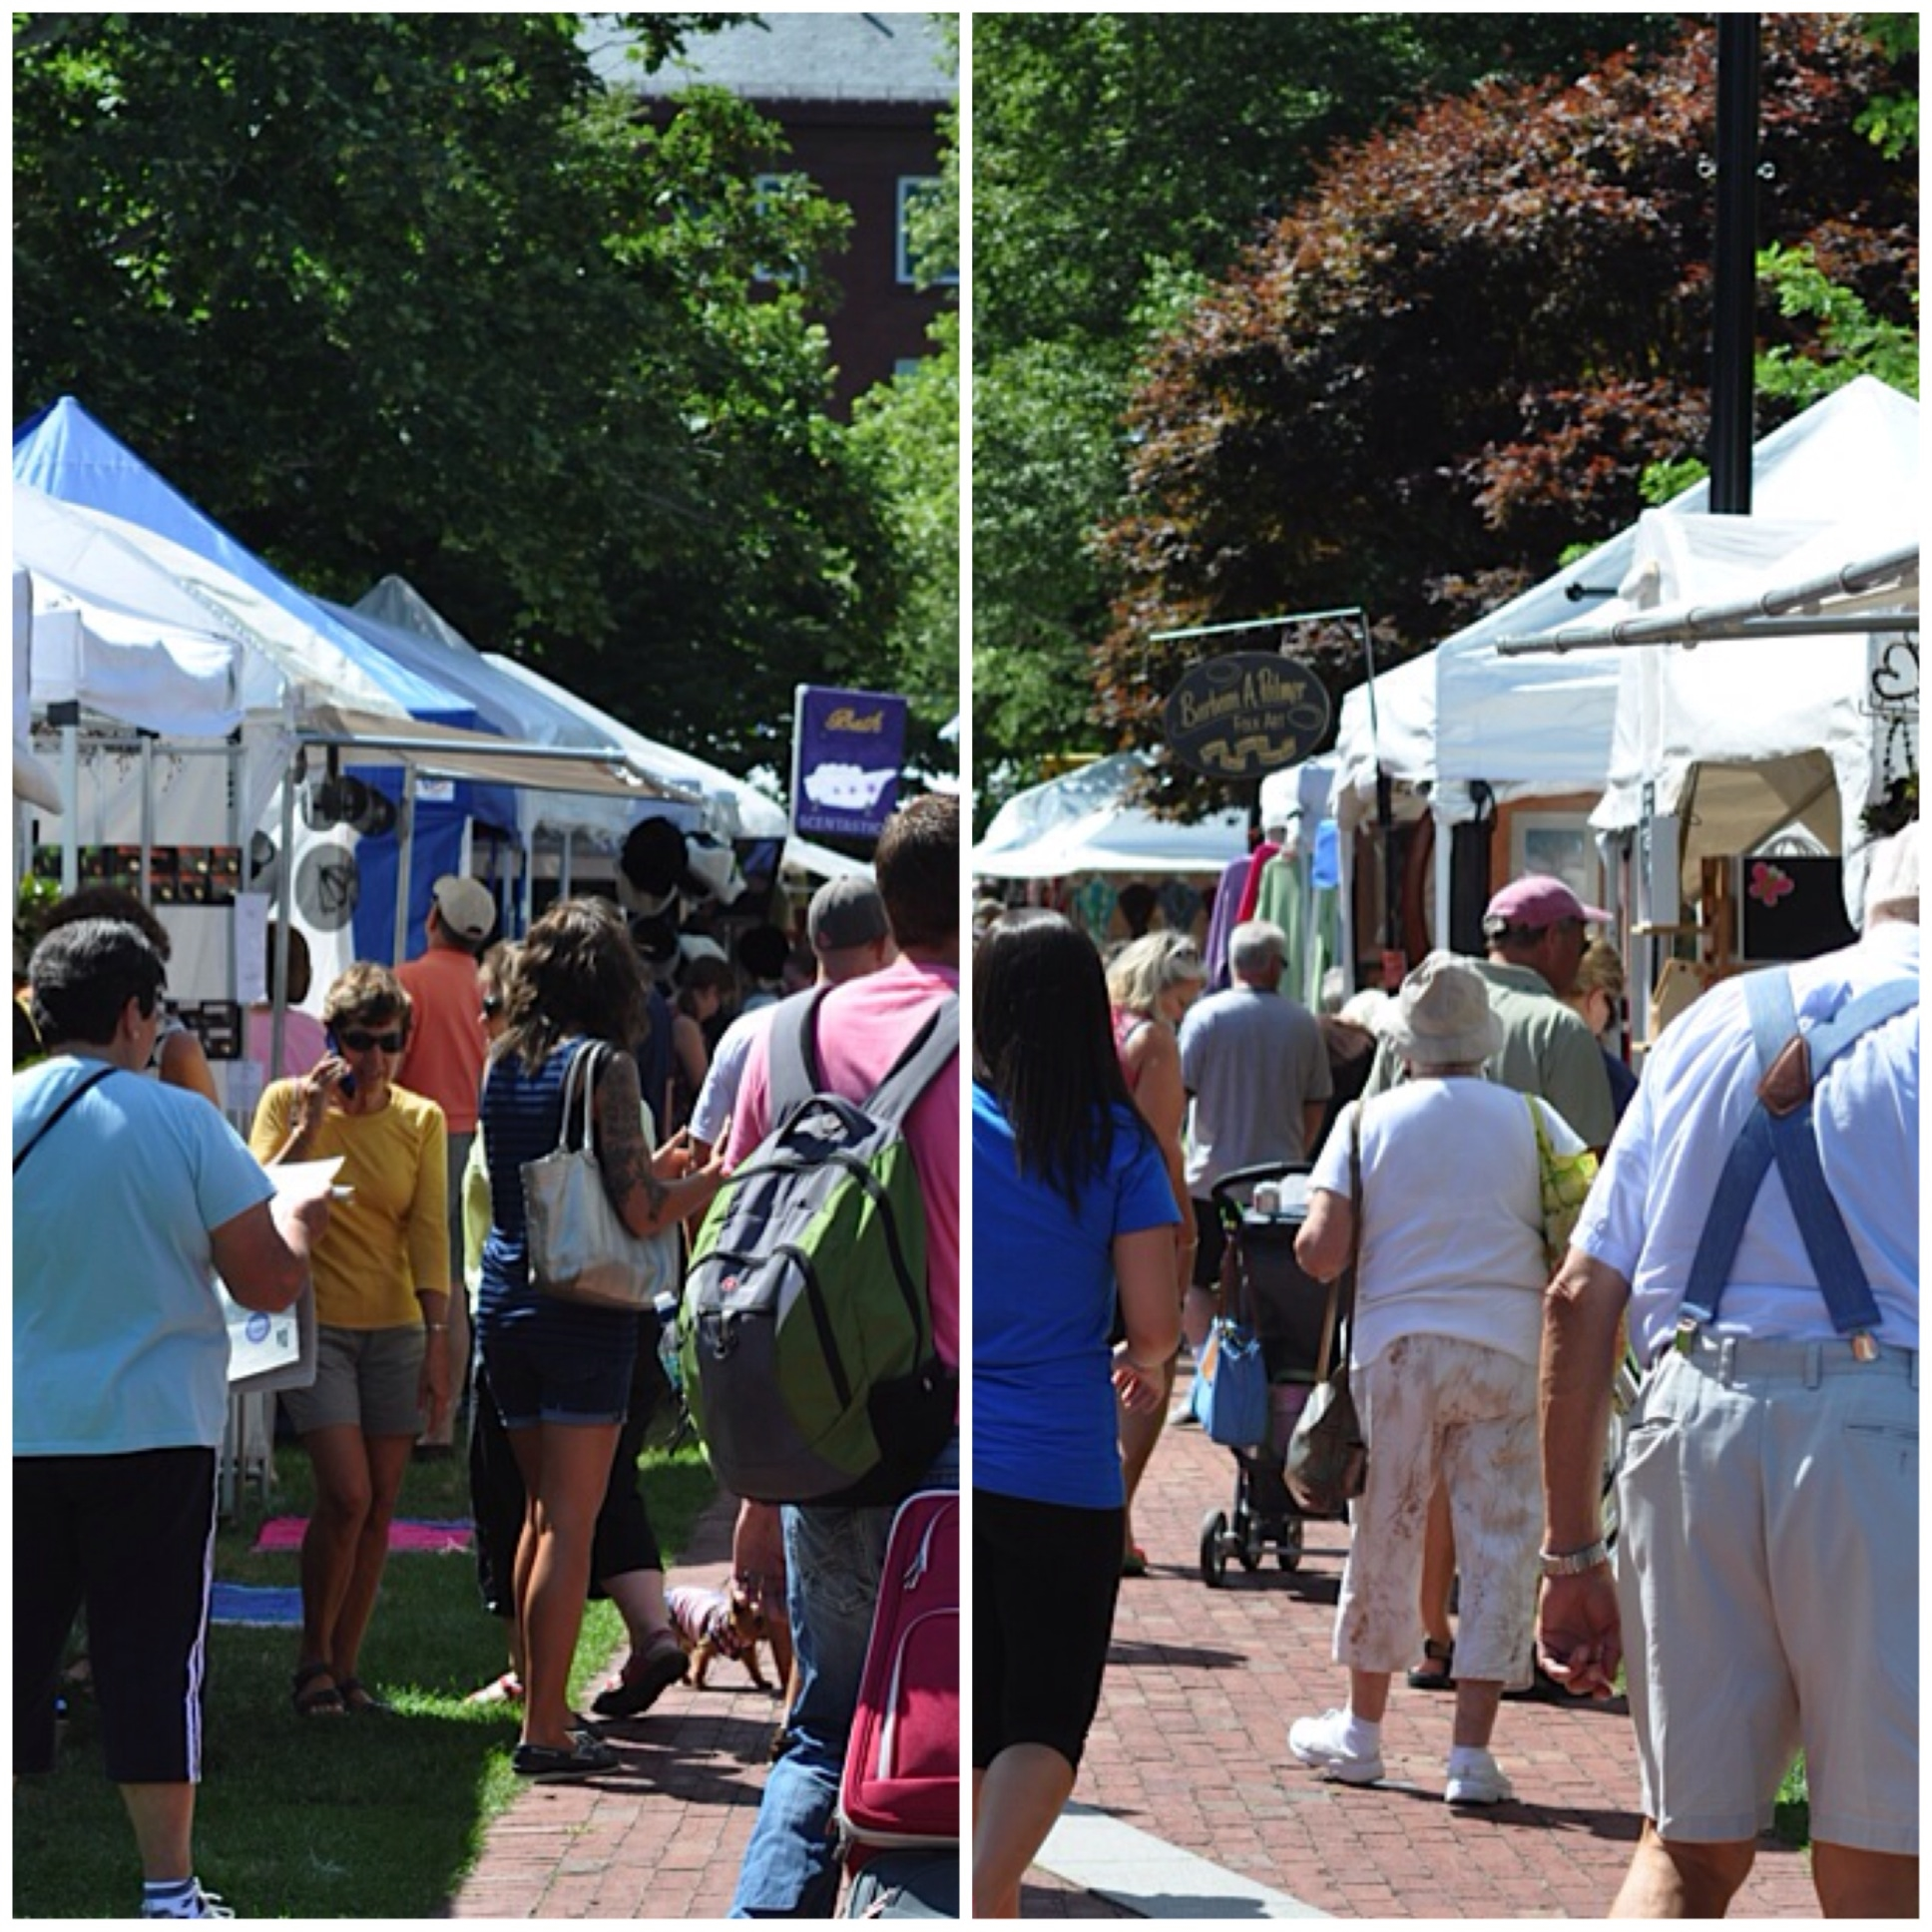 8th Annual Hyannis Summer Arts and Craft Festival